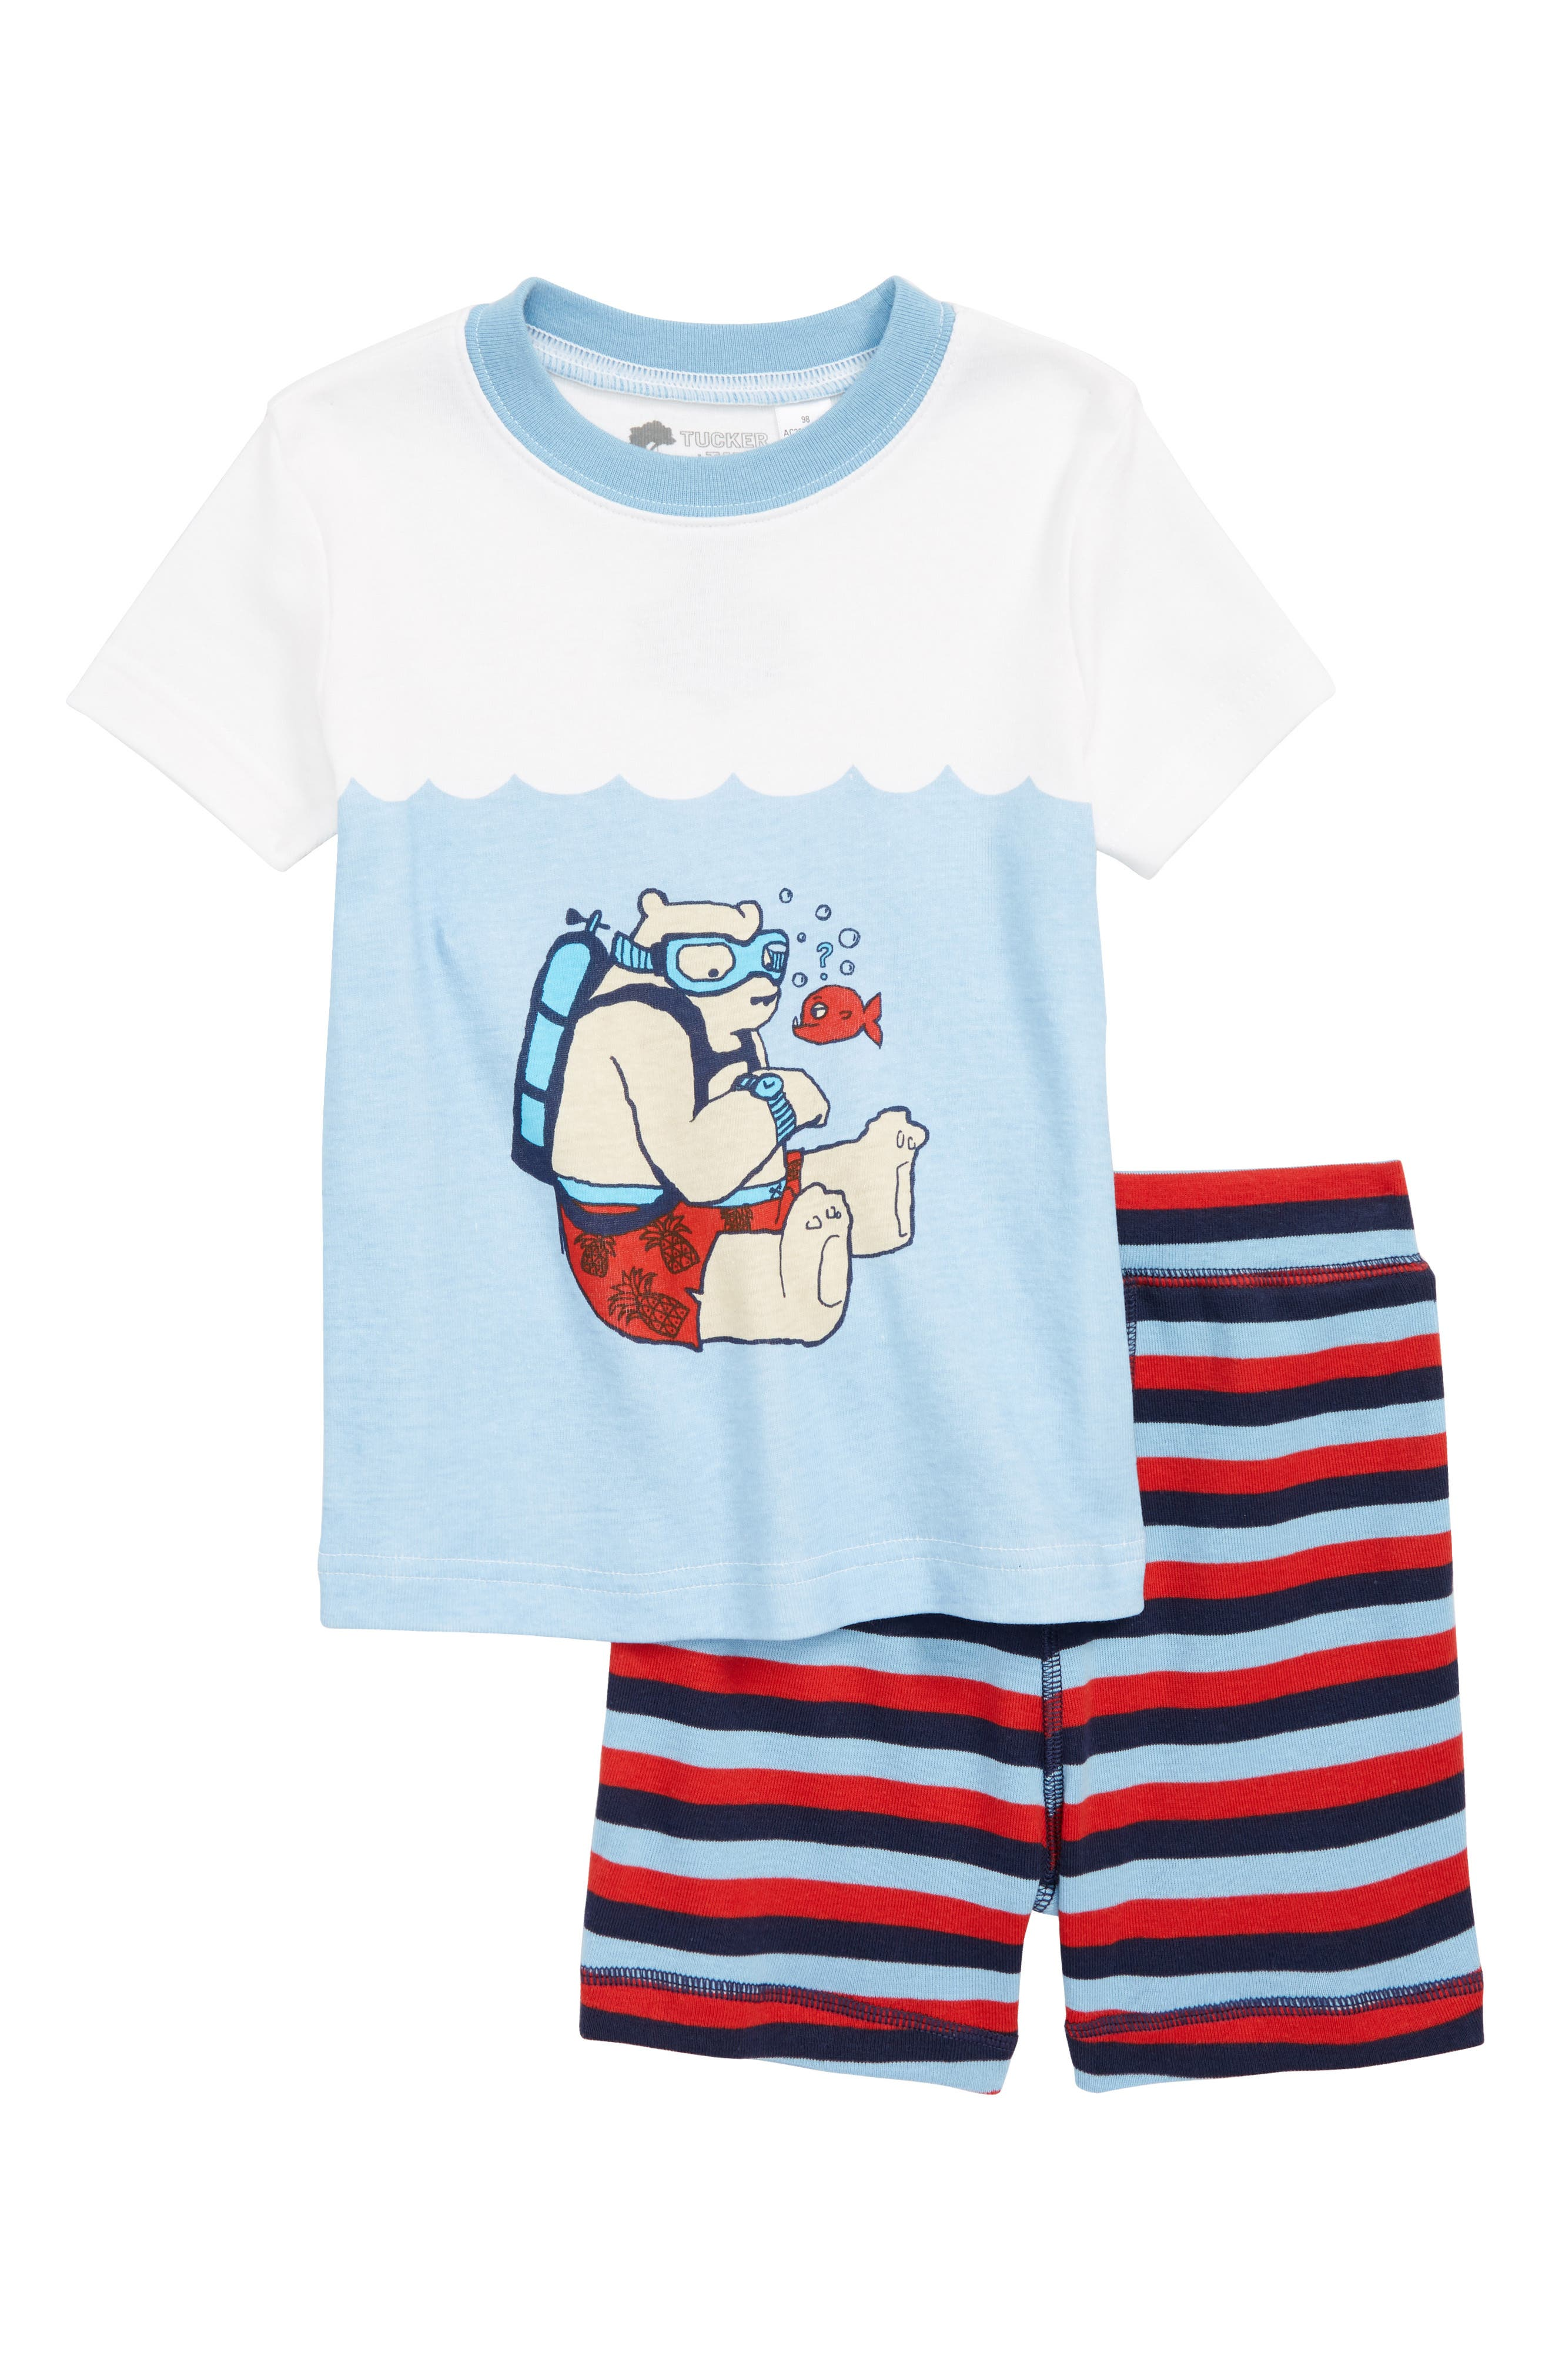 Two-Piece Fitted Pajamas,                         Main,                         color, BLUE DUSK UNDERWATER BEAR